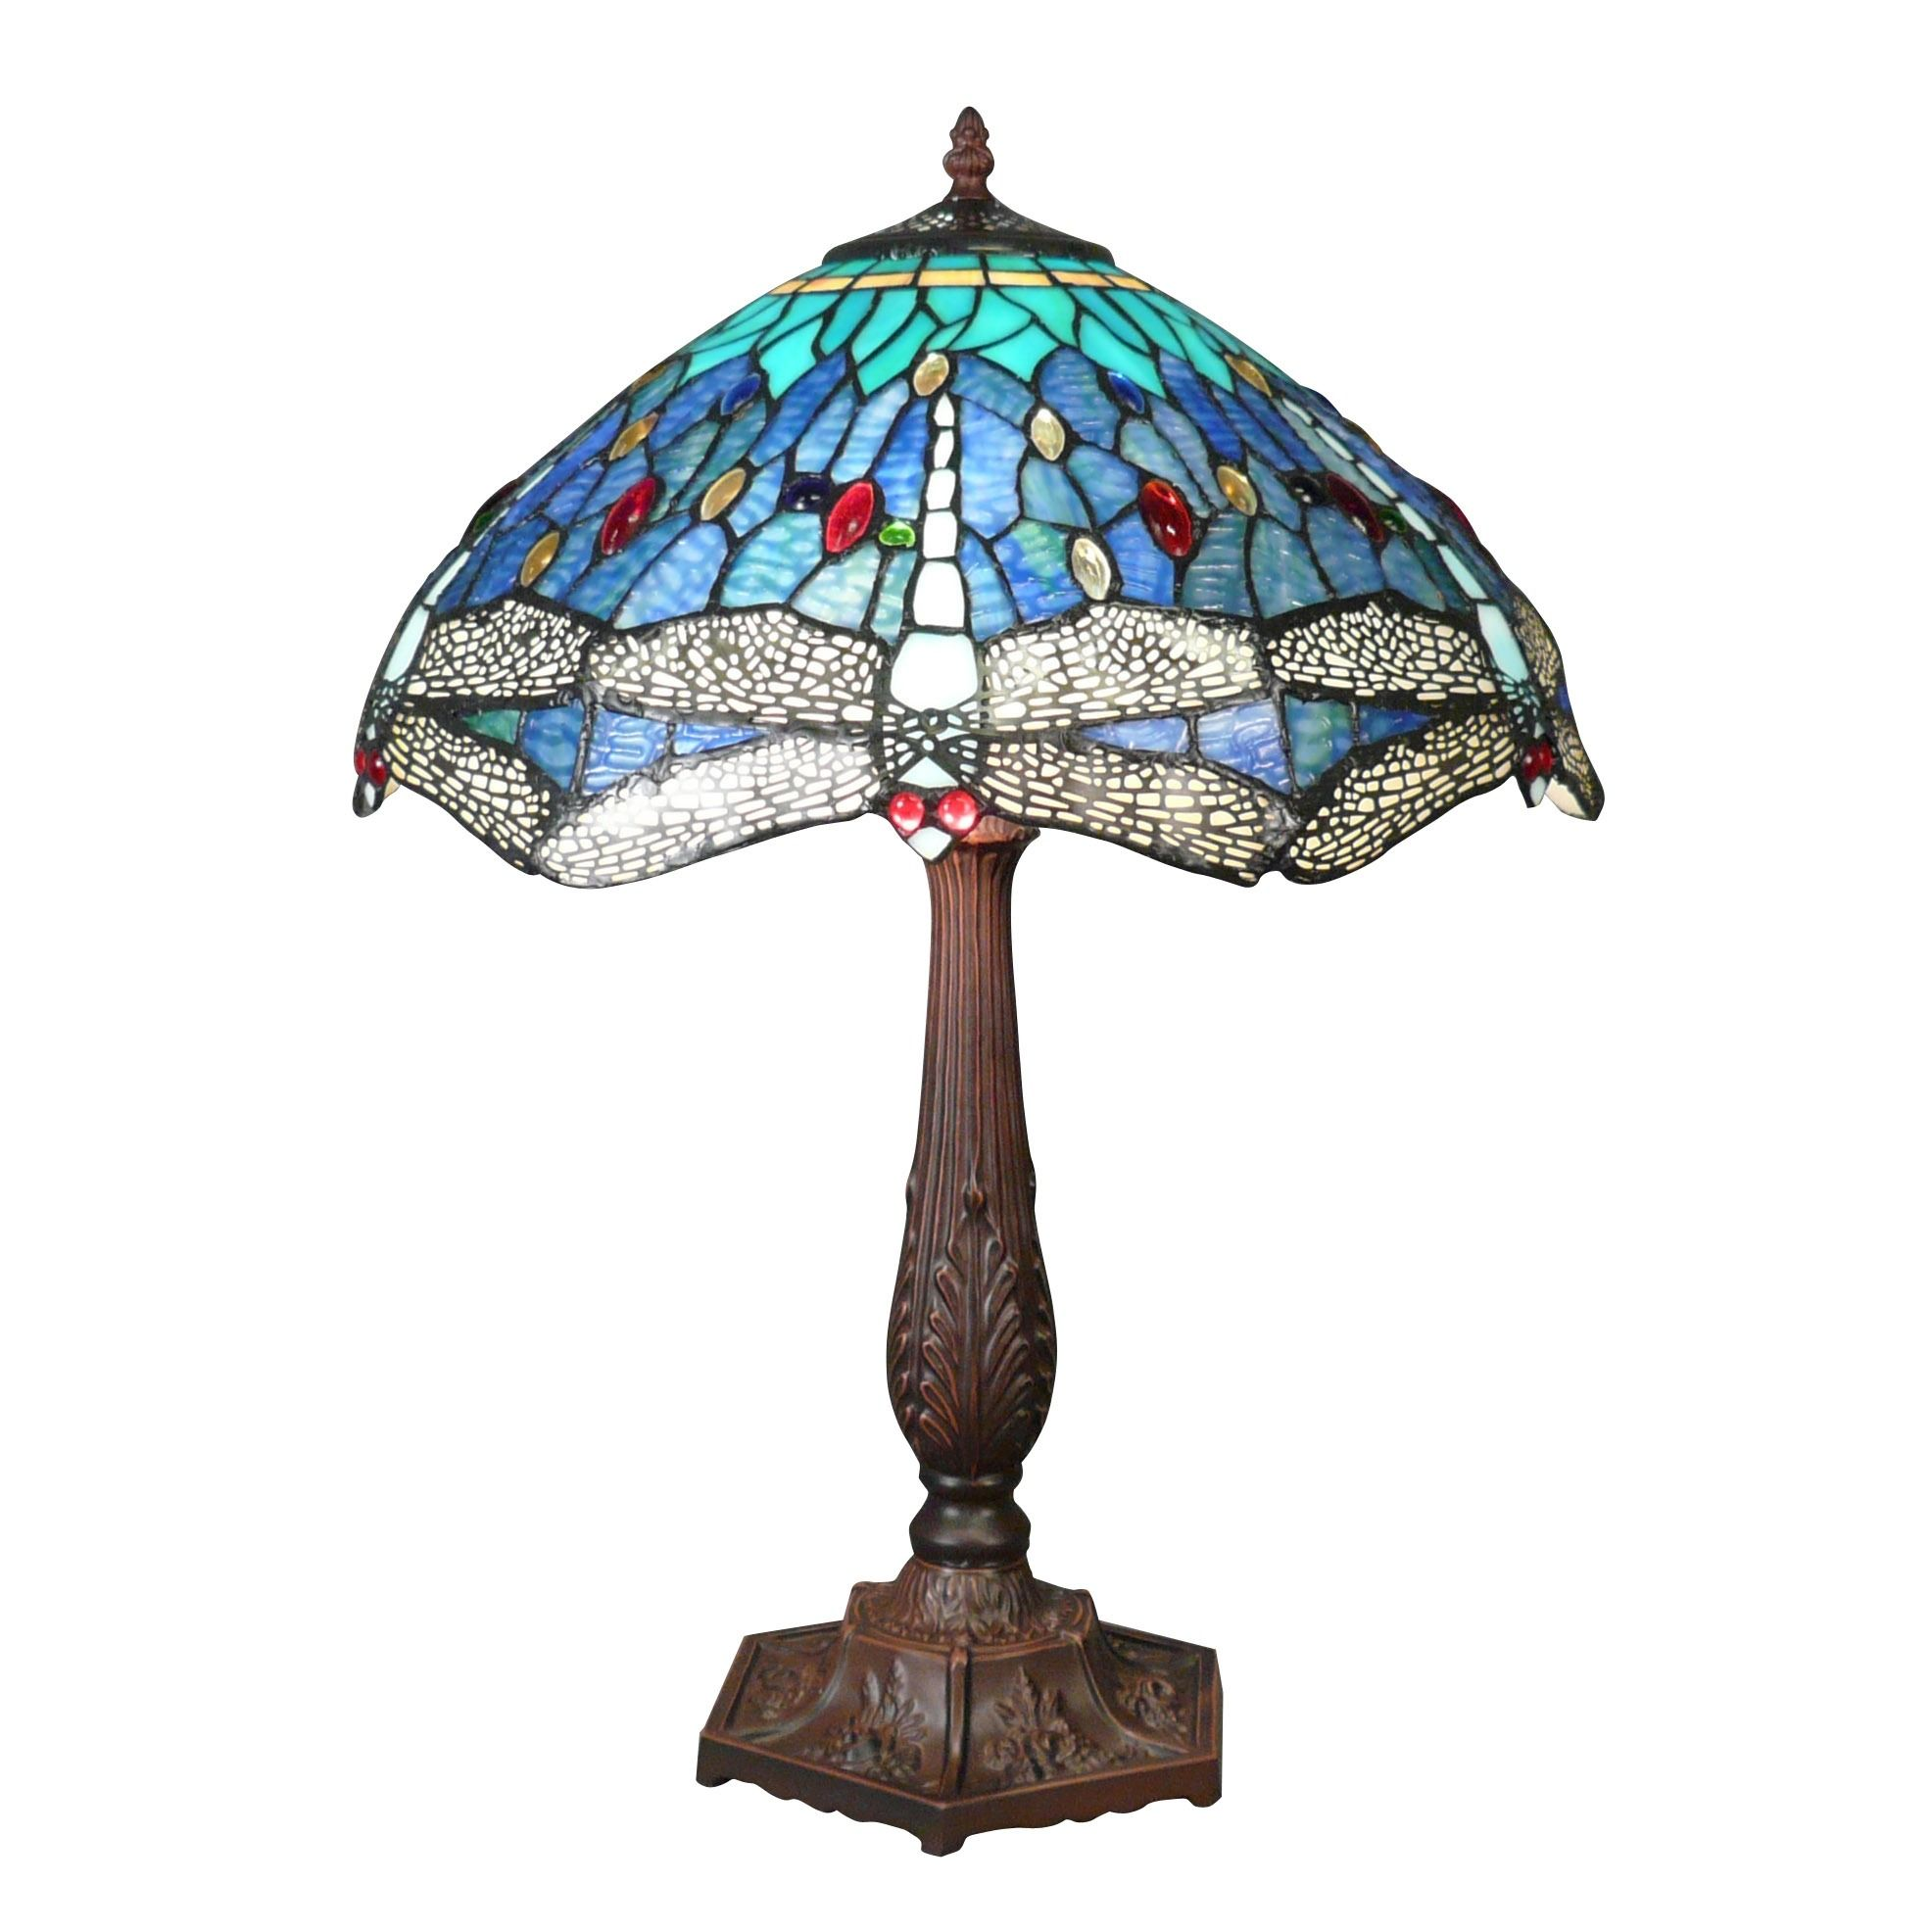 Blue Dragonfly Tiffany Lamp Tiffany Lamps Store Tiffany Lamps